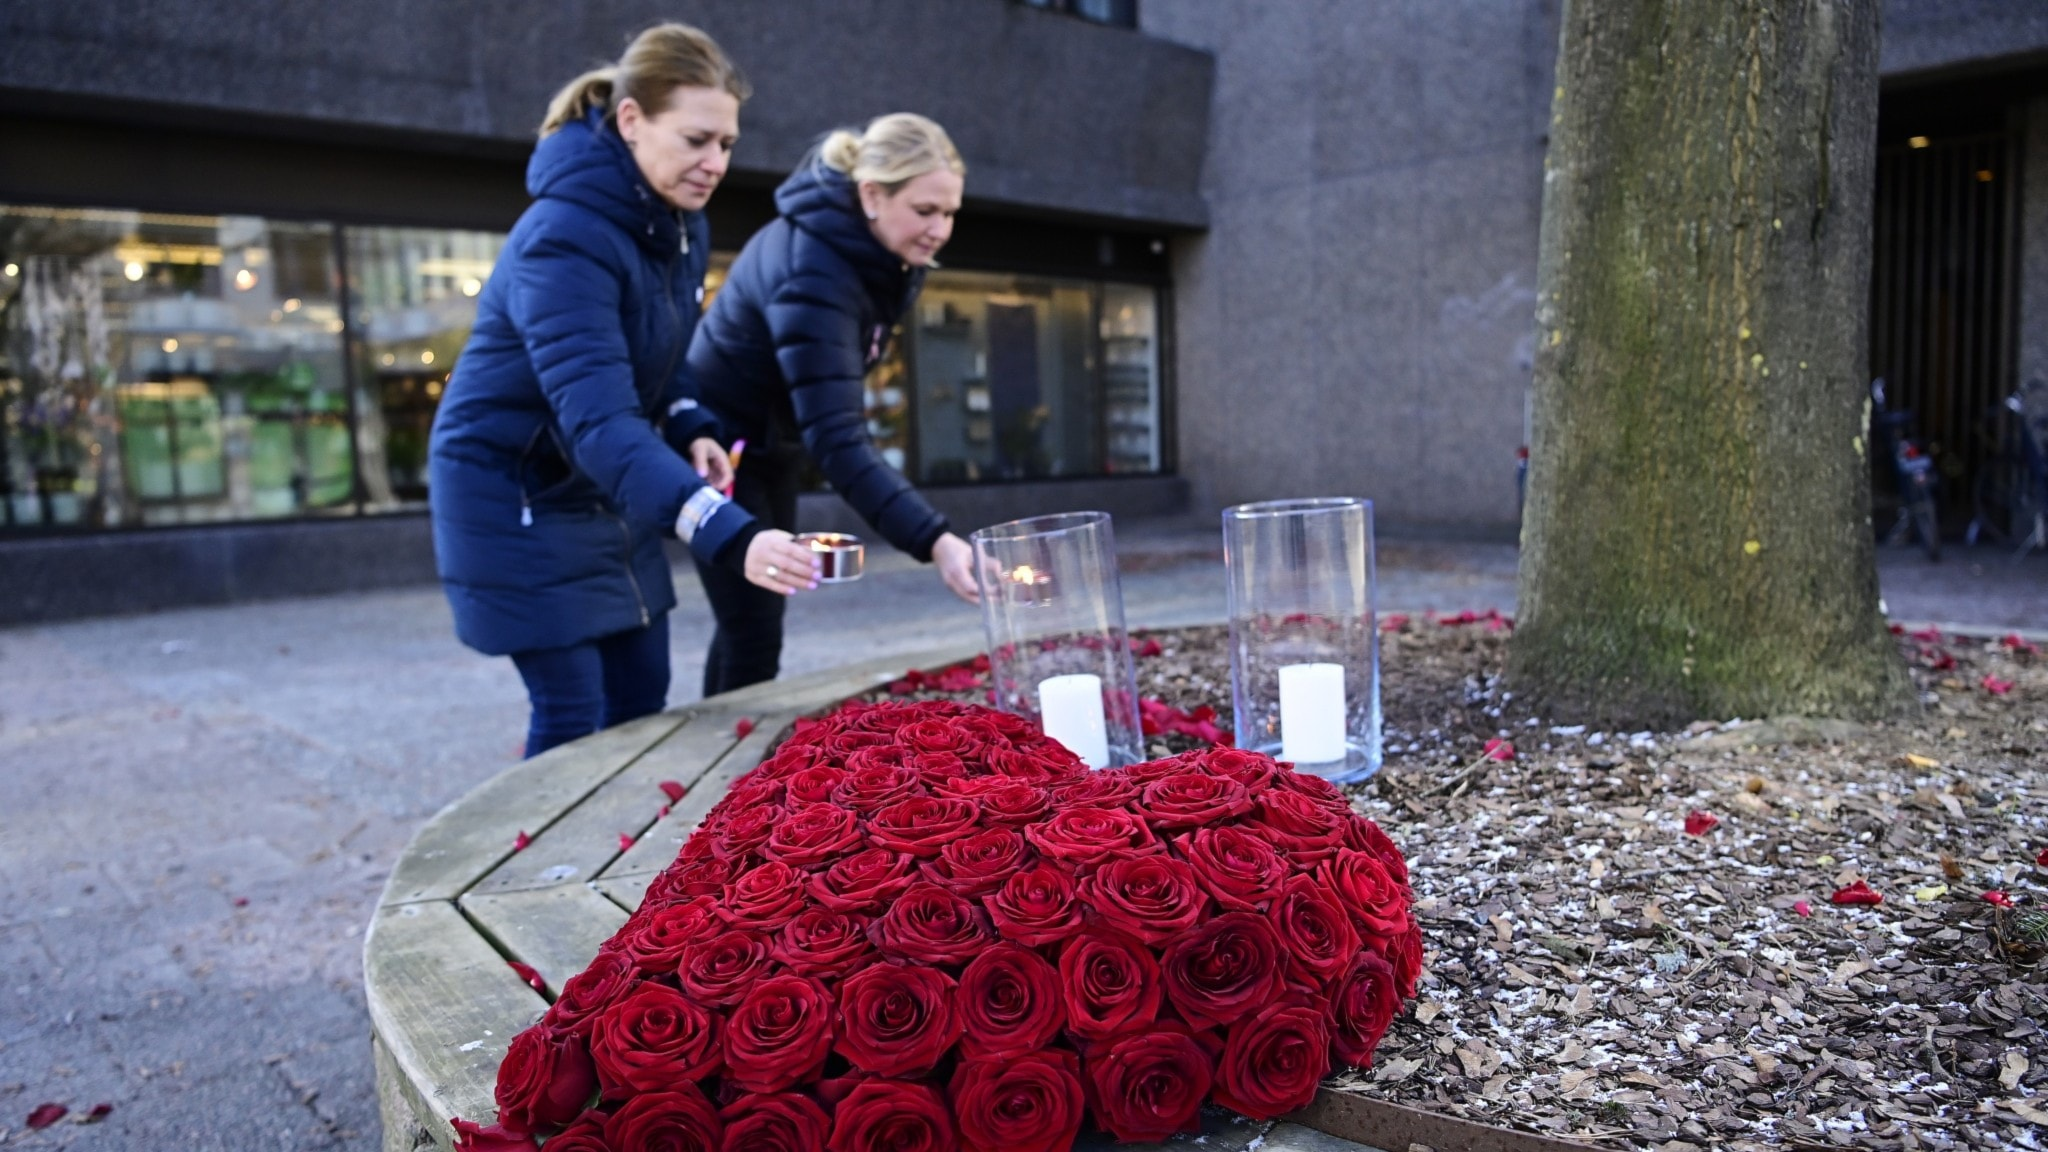 An image of people laying flowers outside.